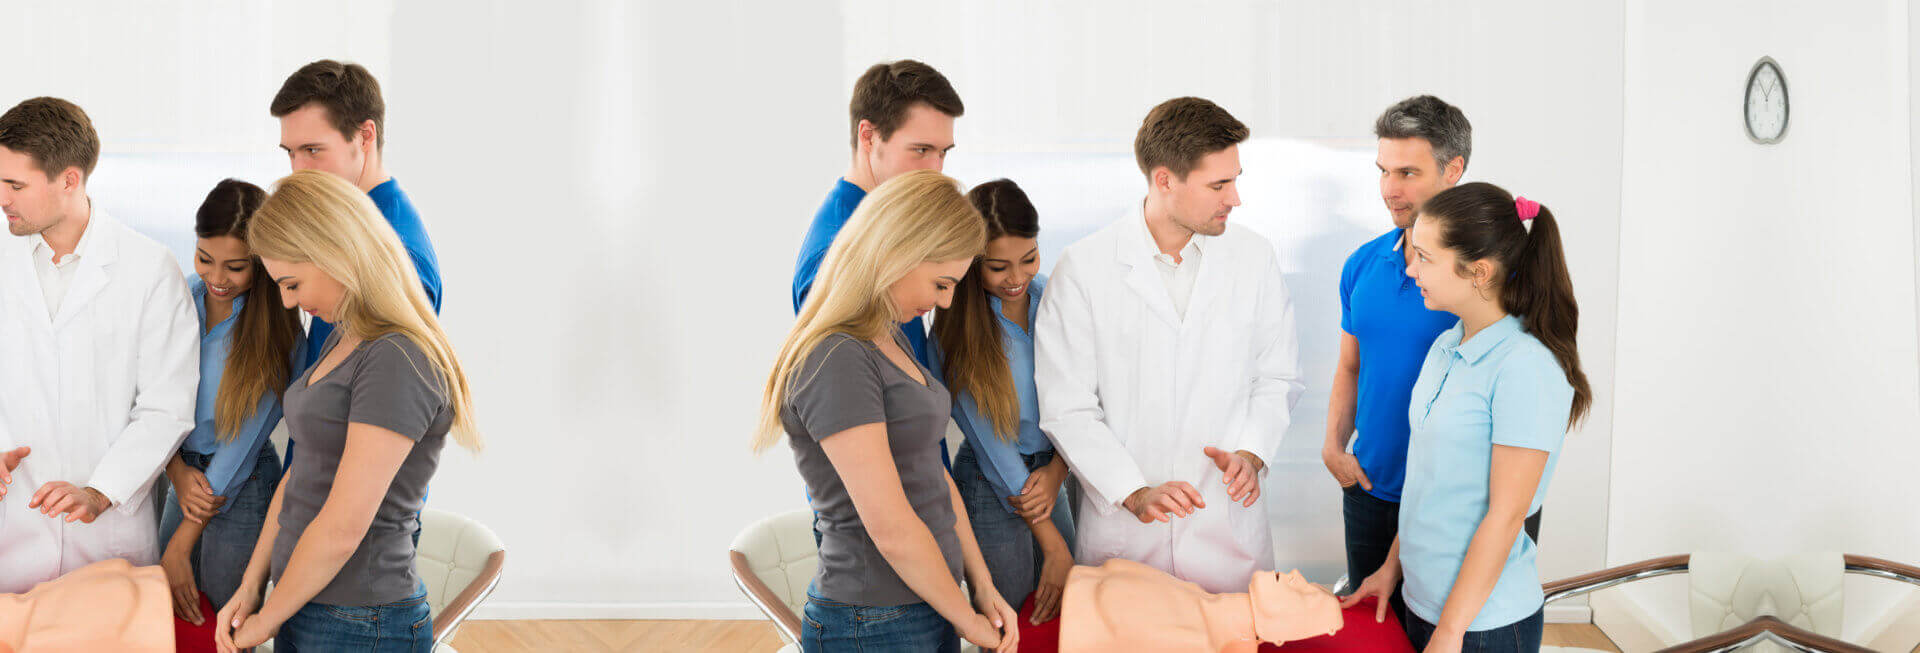 doctor doing first aid demonstration